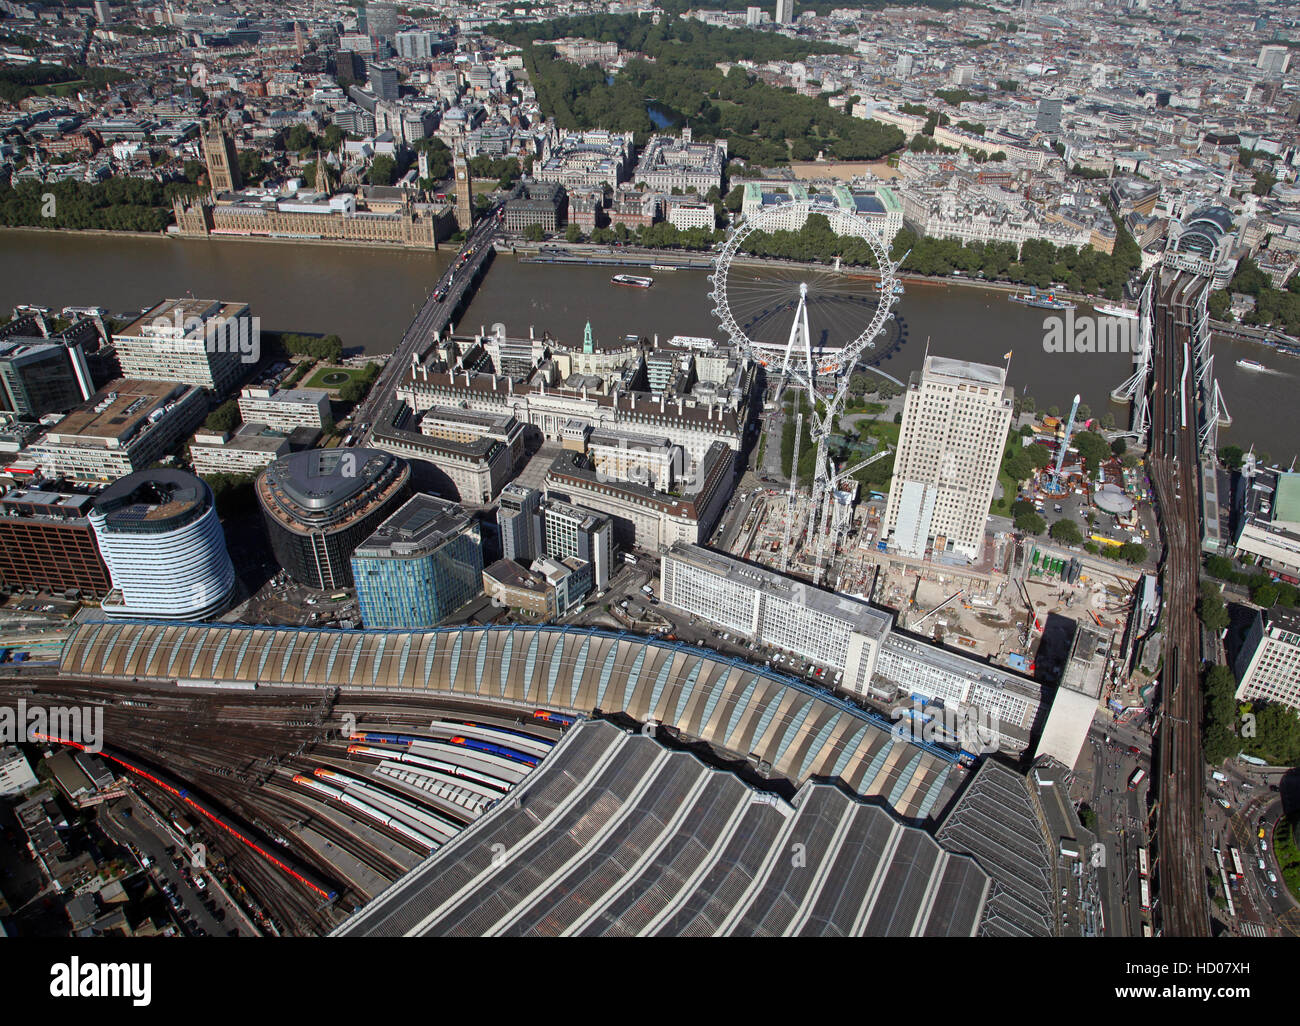 aerial view of The Shell Centre Redevelopment Project on London's South Bank, England, UK Stock Photo